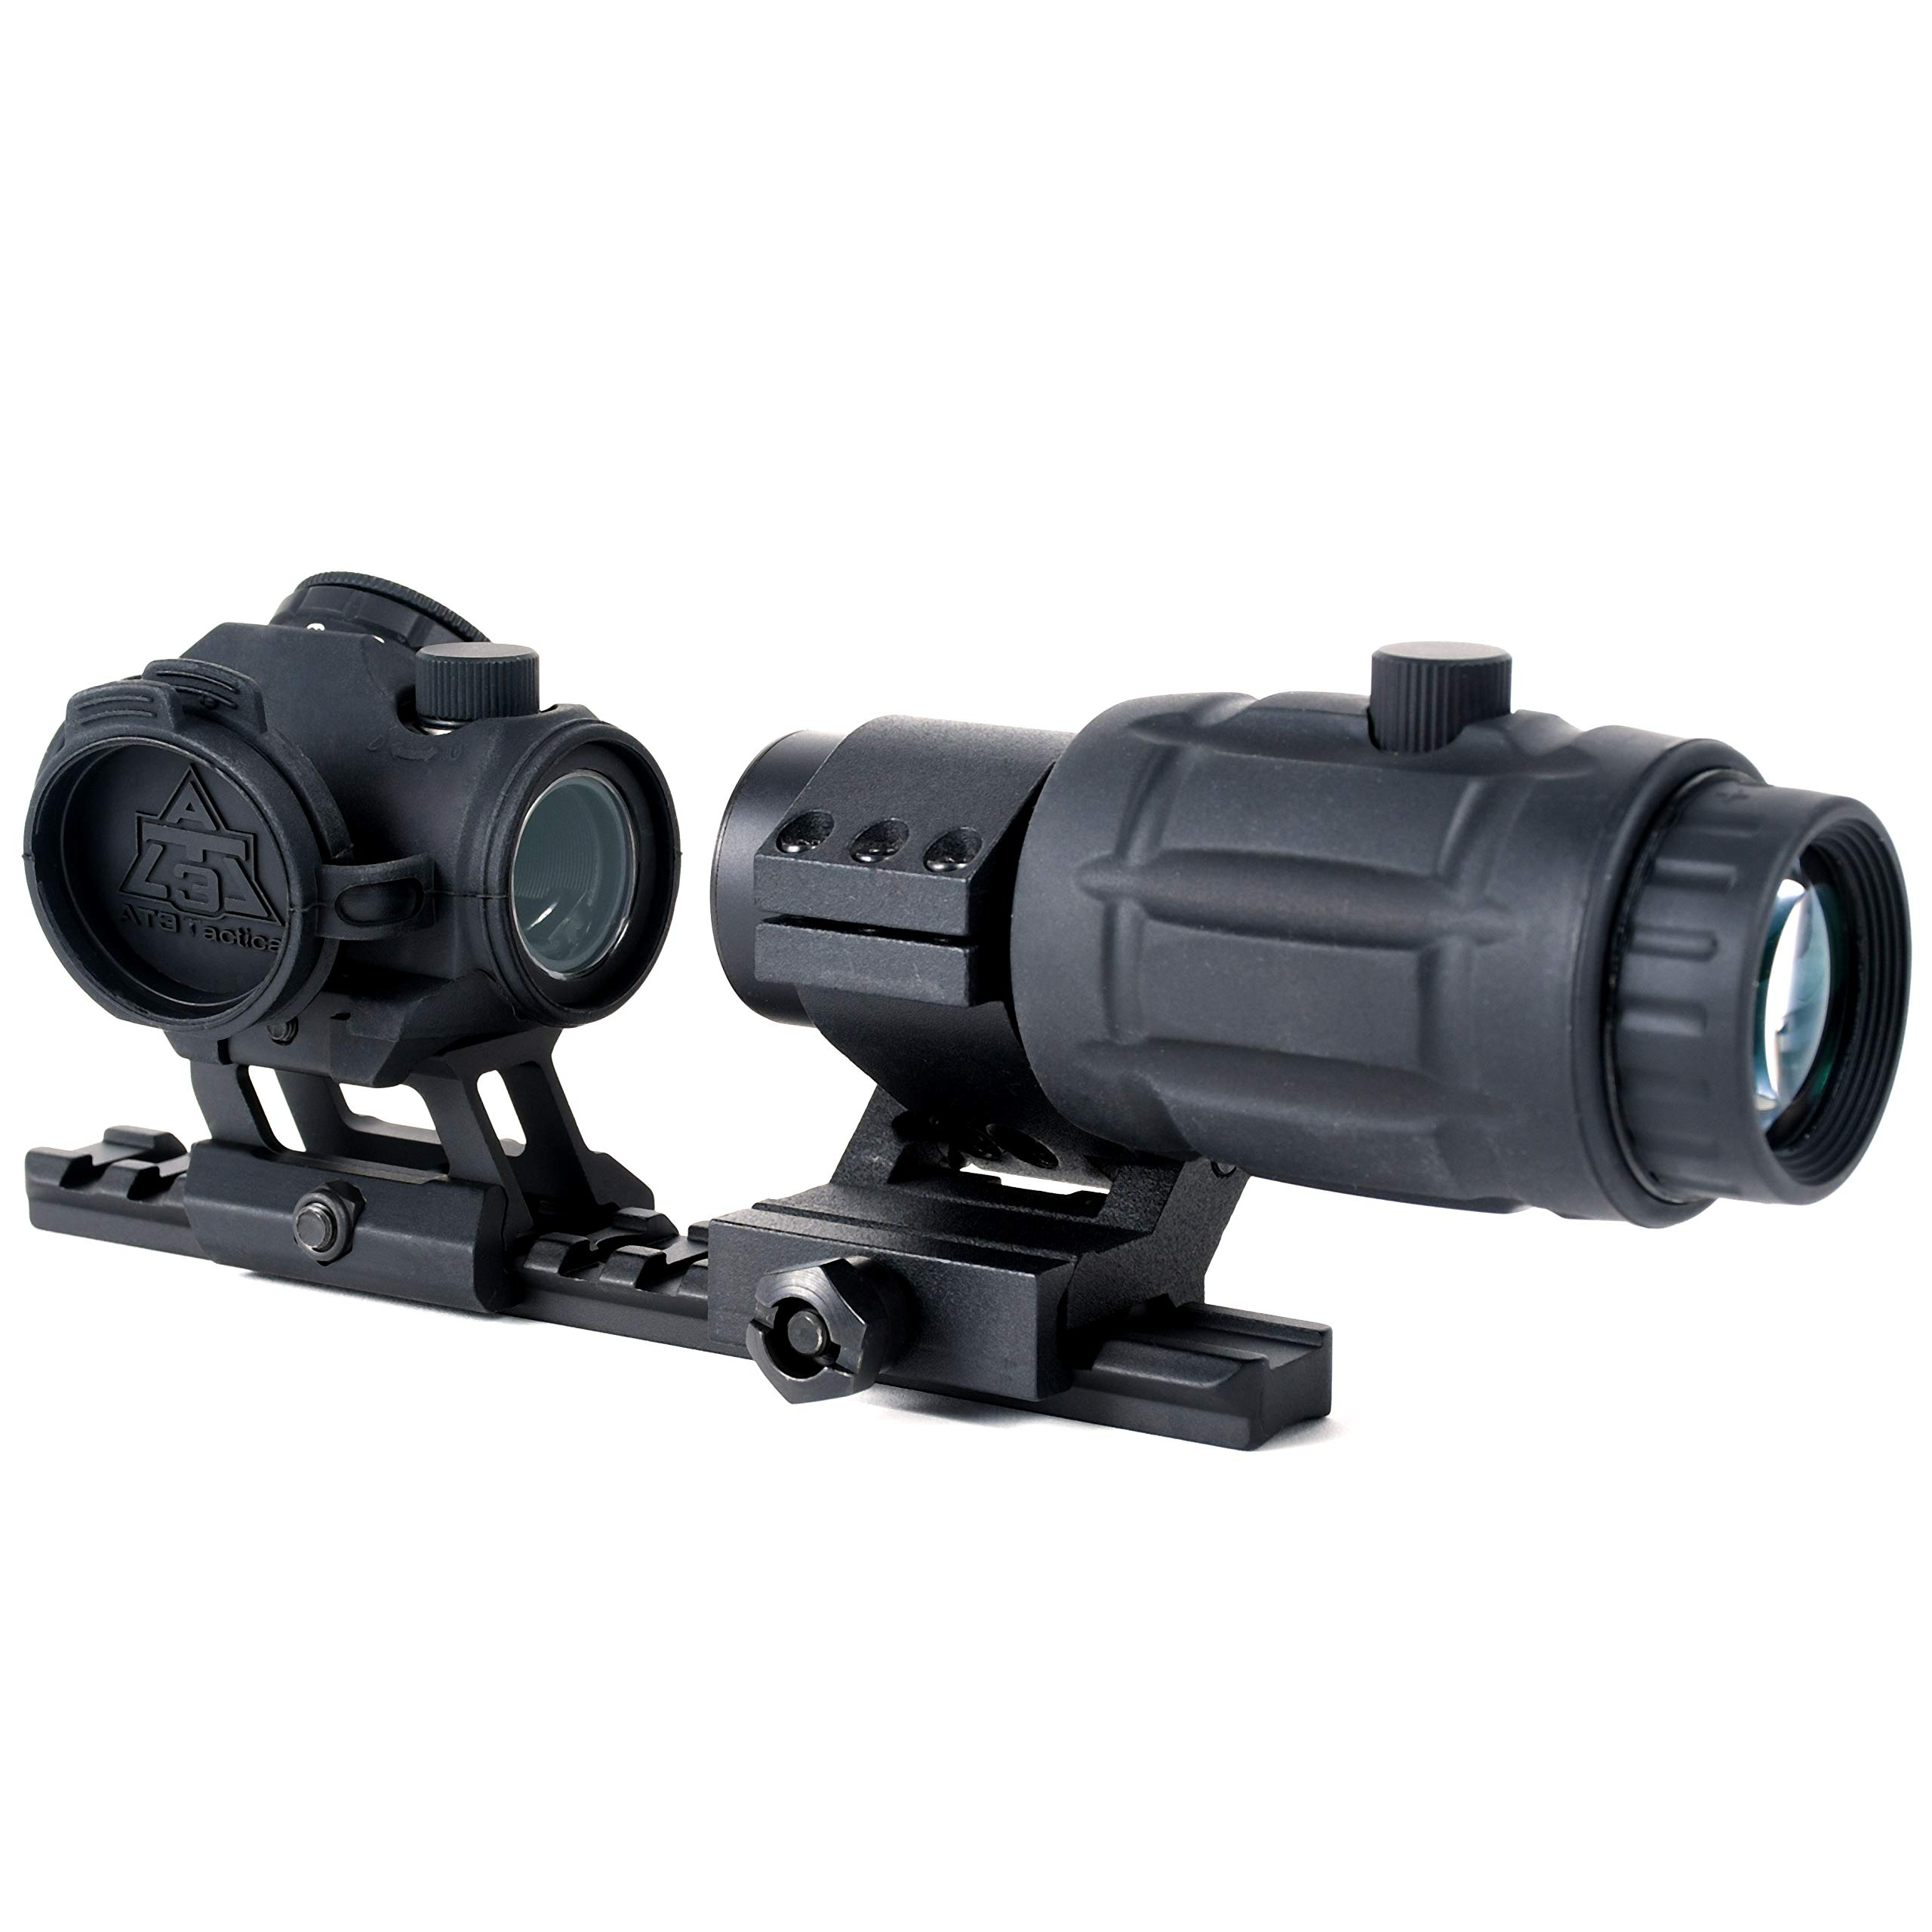 AT3 Tactical RD-50 Red Dot Sight + 3X RRDM Red Dot Magnifier Combo Kit by AT3 Tactical (Image #3)